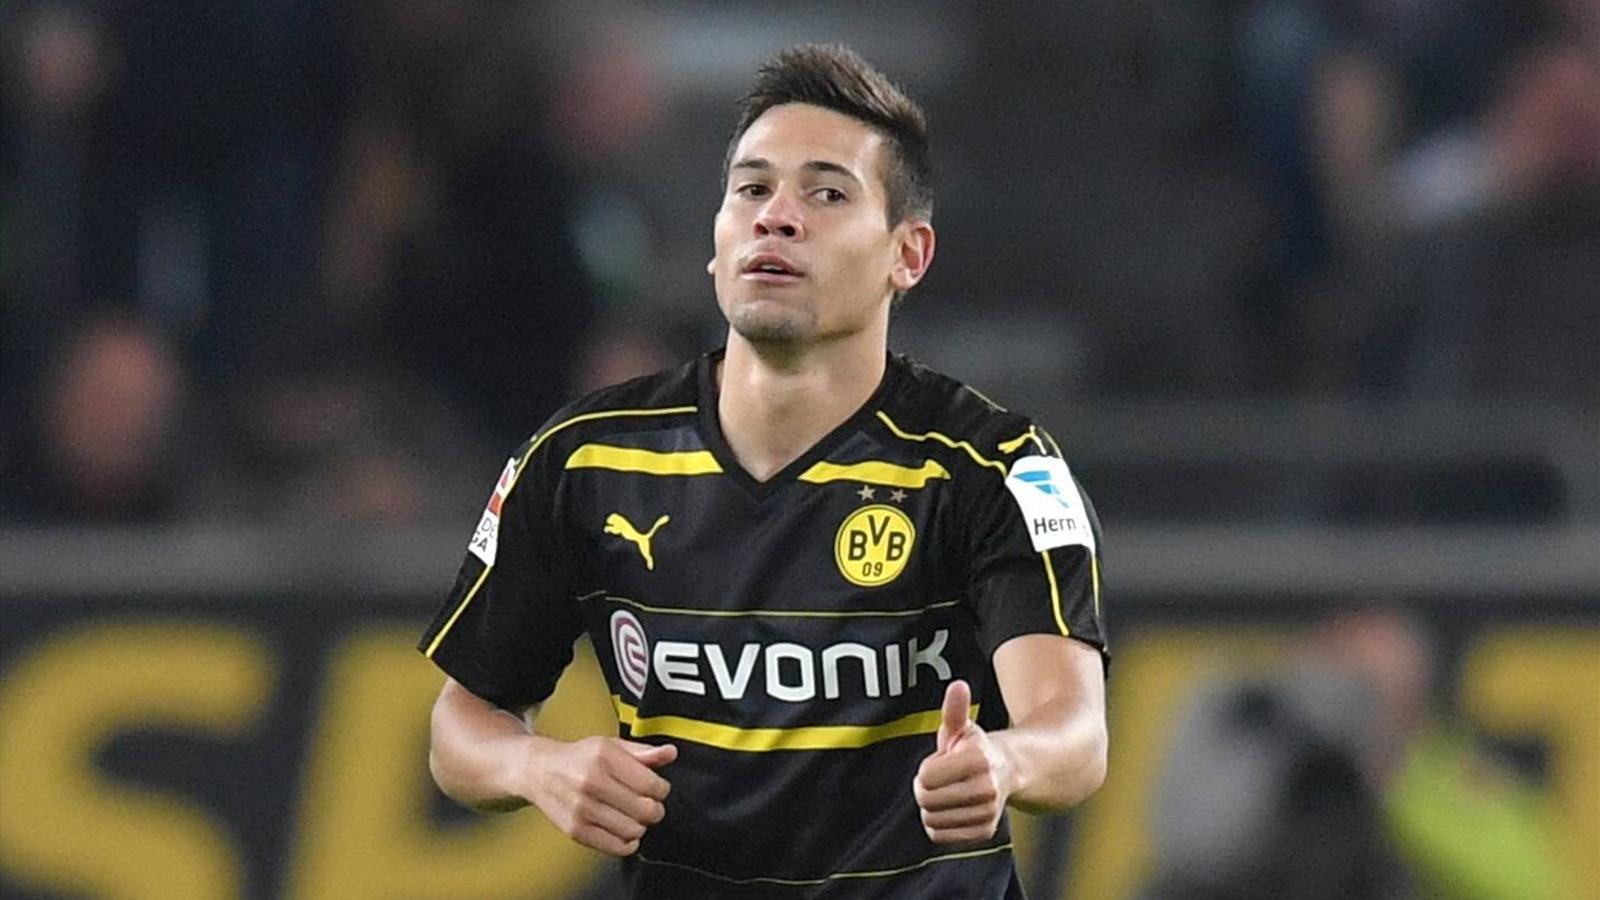 rapha l guerreiro dortmund condamn 90 000 euros d 39 amende pour d lit de fuite bundesliga. Black Bedroom Furniture Sets. Home Design Ideas